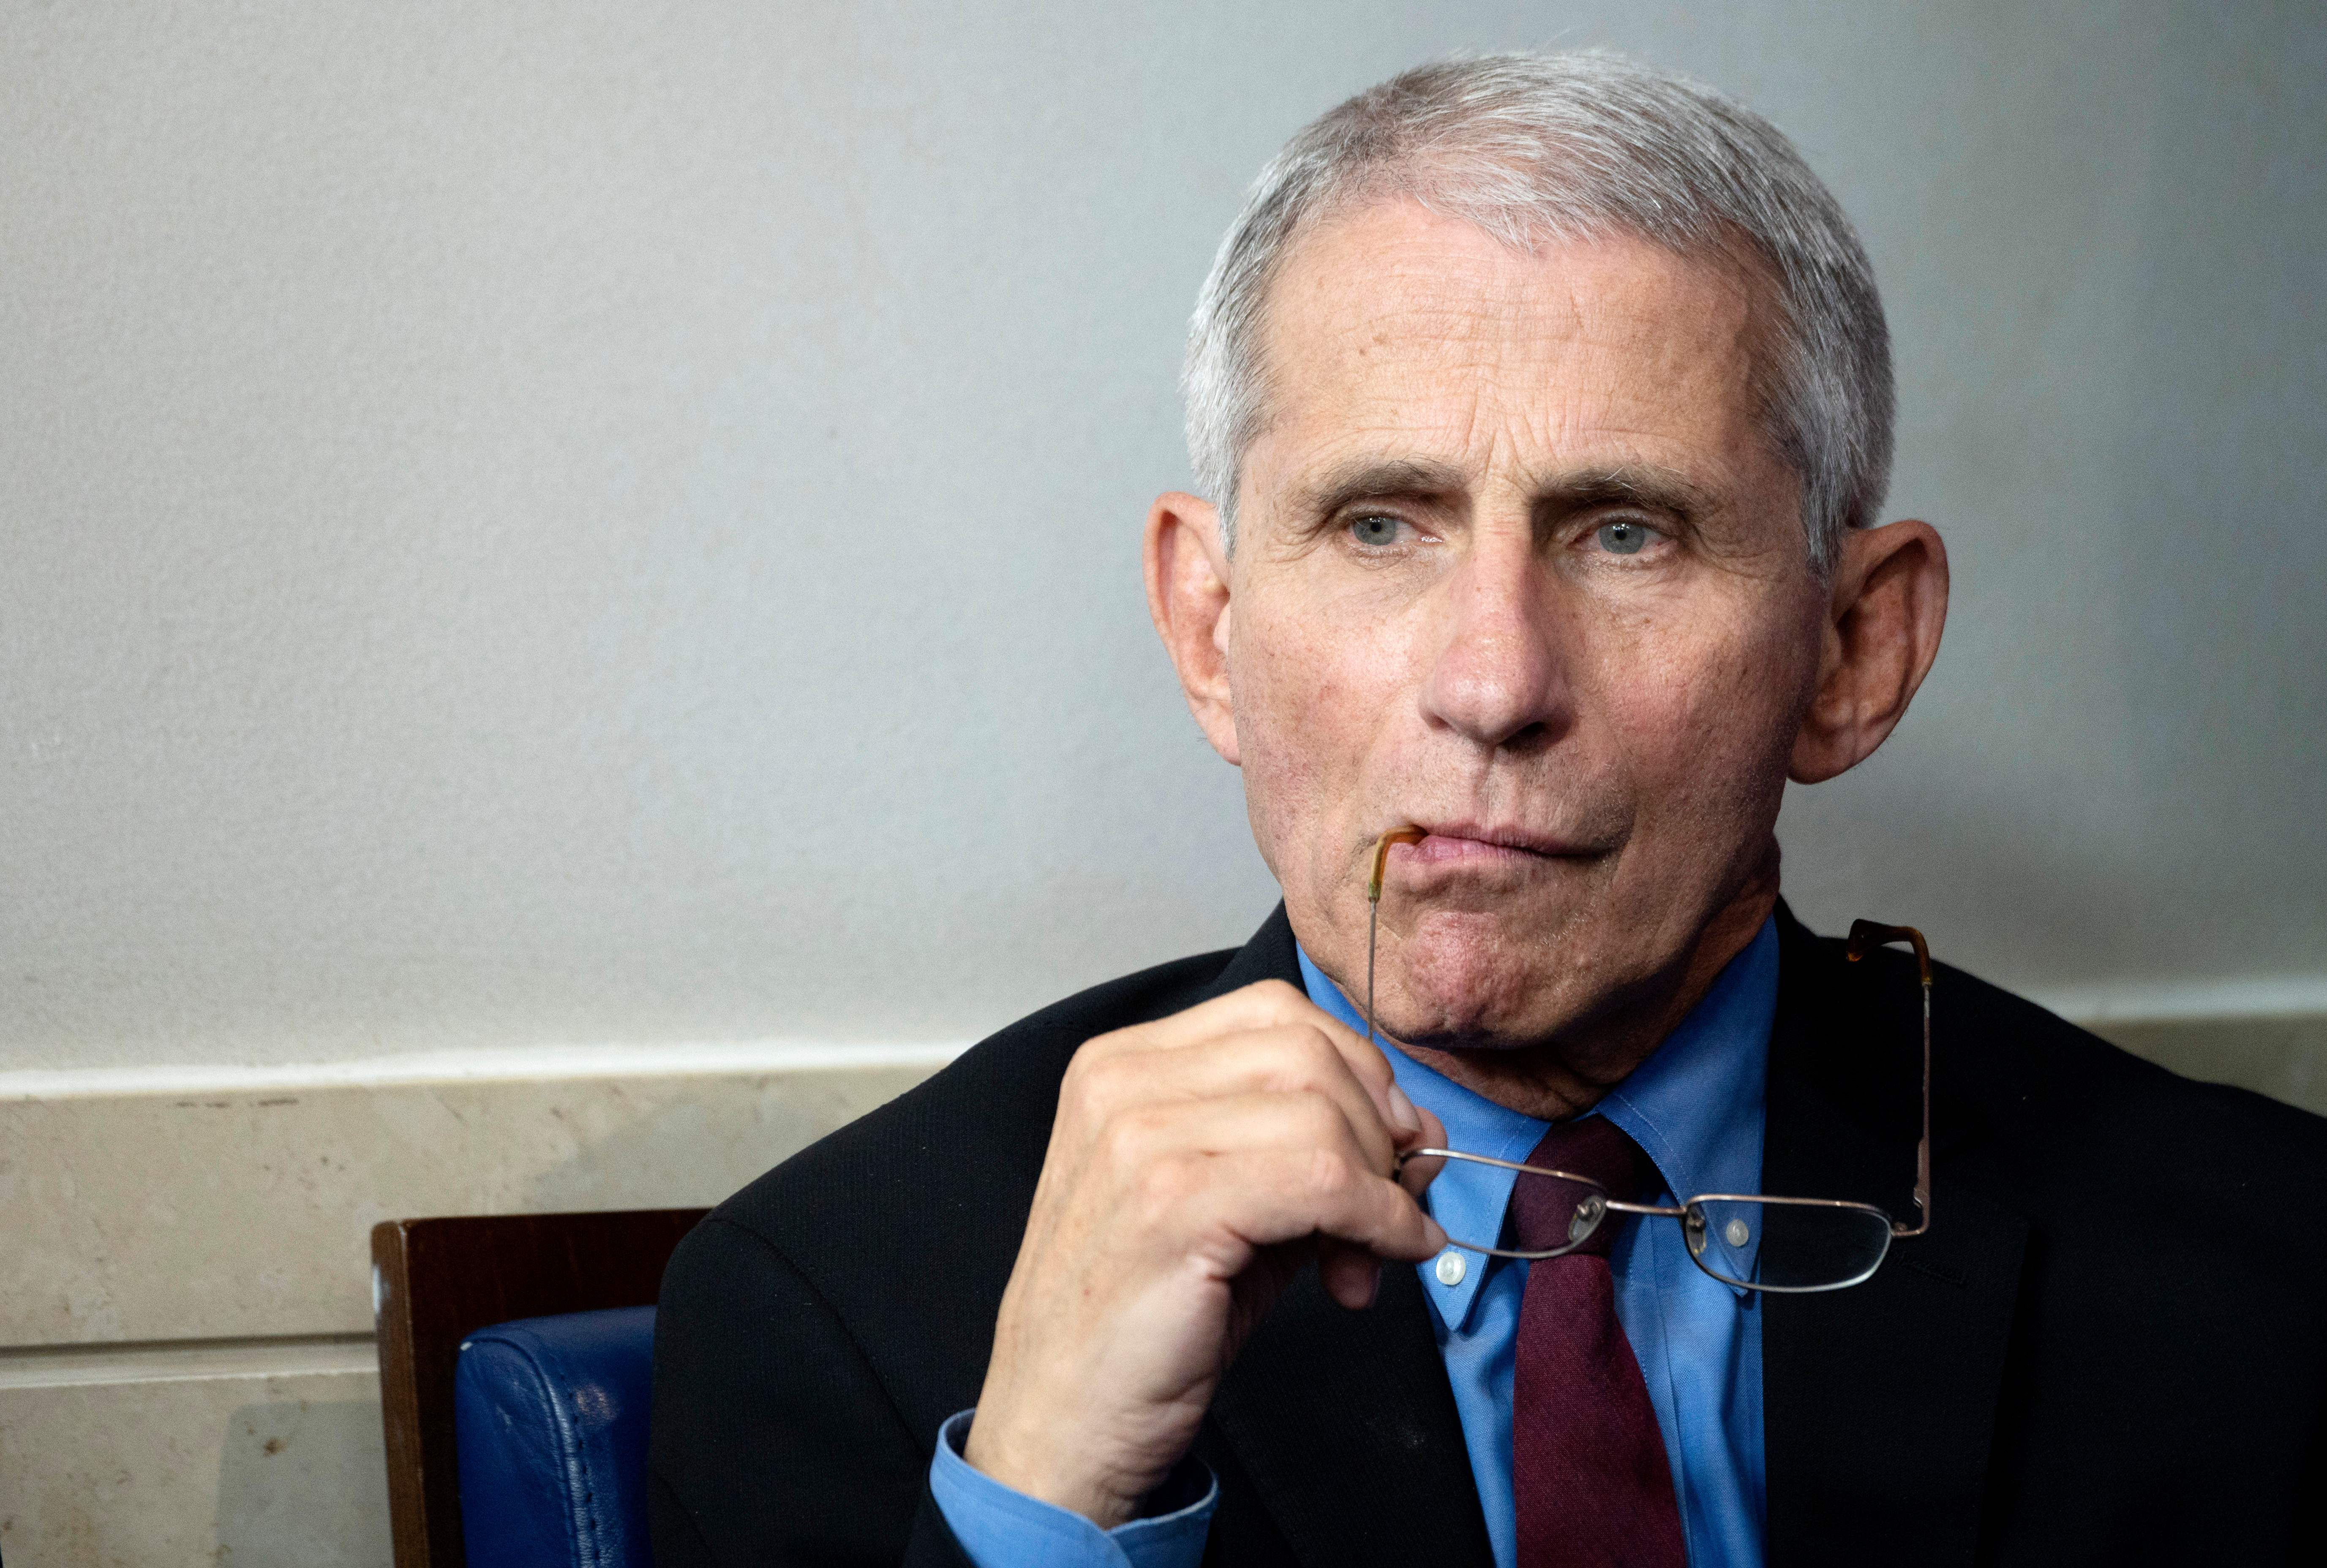 Dr. Anthony Fauci: Petition an den Namen doctor